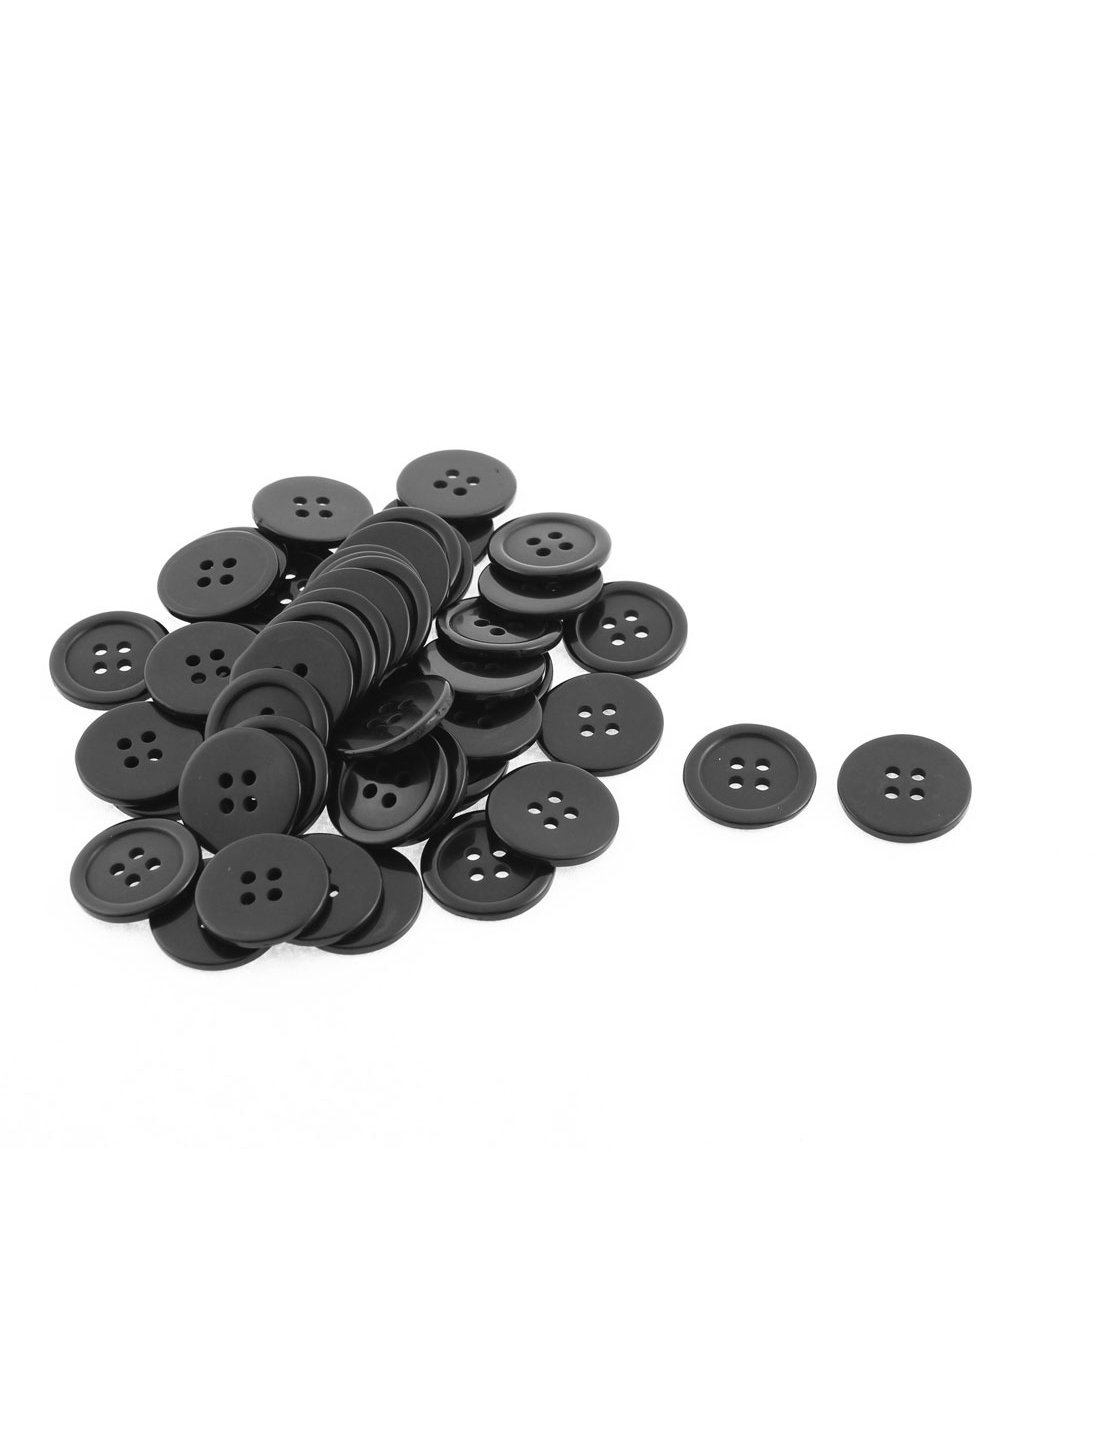 uxcell® 4 Holes Round Design Sewing Buttons Scrapbook 50Pcs Black